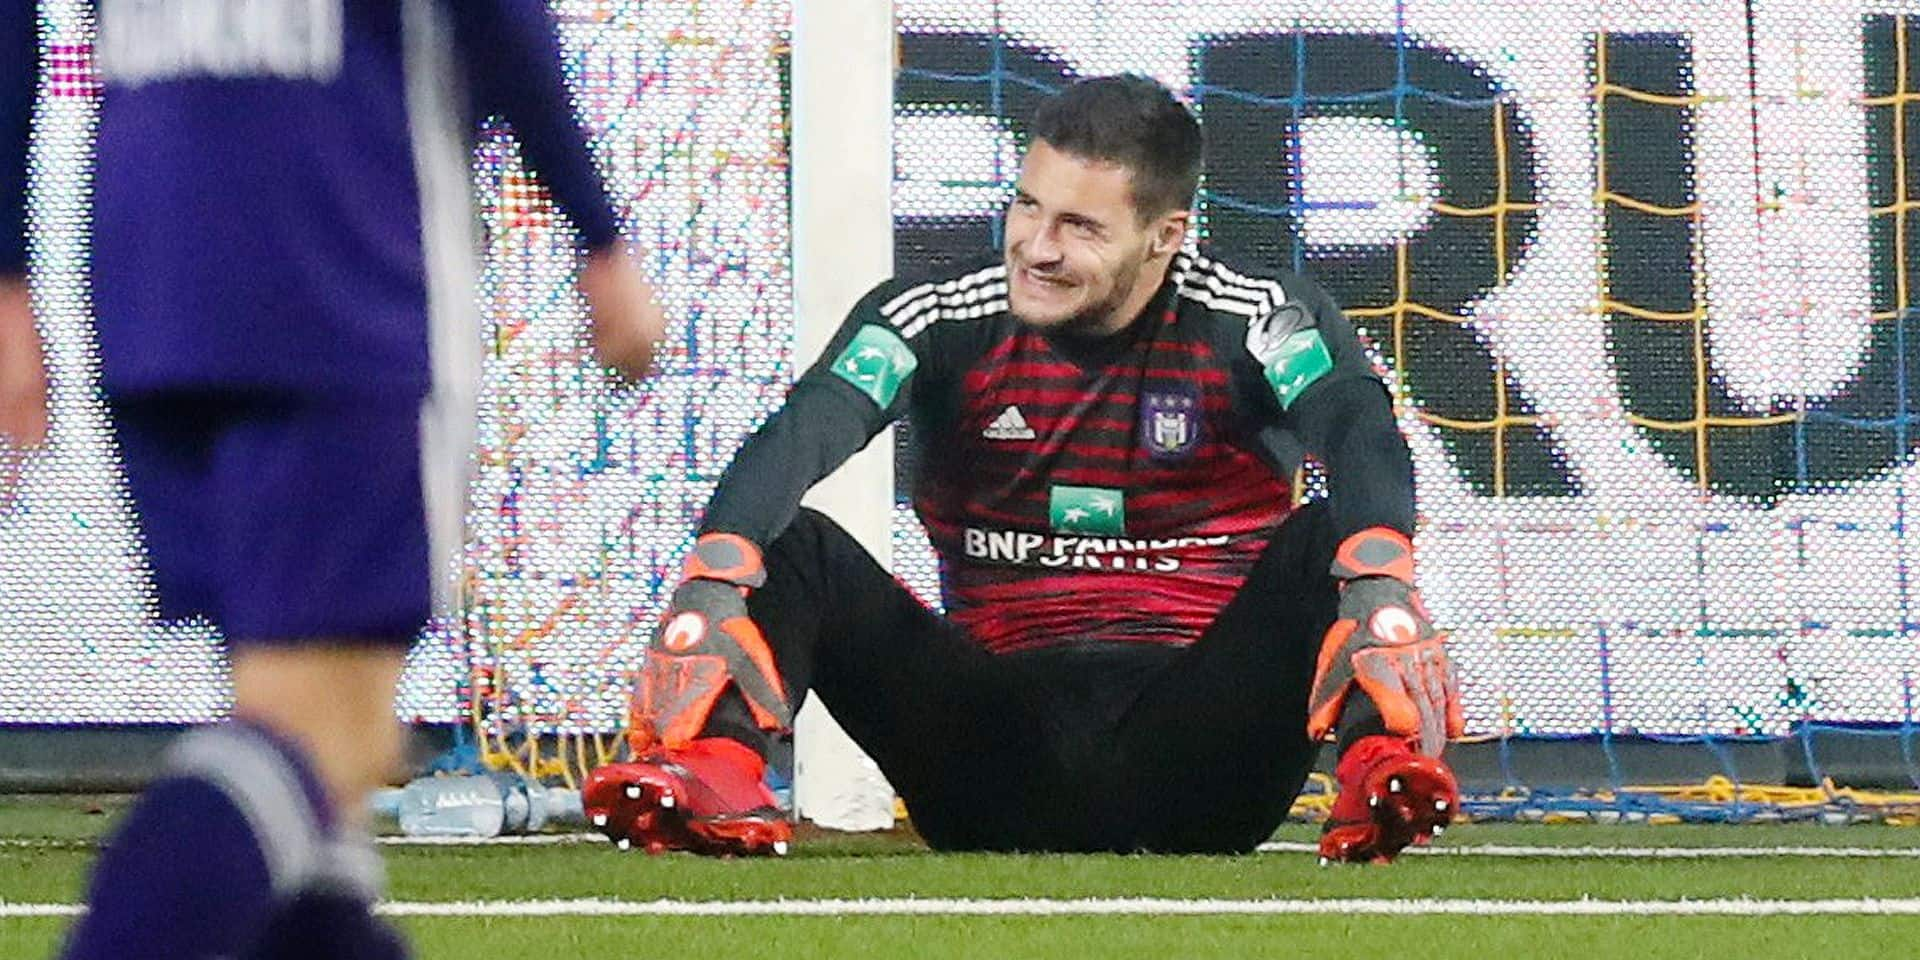 Anderlecht's goalkeeper Thomas Didillon looks dejected during the soccer match between Sint-Truidense VV and RSC Anderlecht, Sunday 25 November 2018 in Sint-Truiden, on the 16th day of the 'Jupiler Pro League' Belgian soccer championship season 2018-2019. BELGA PHOTO VIRGINIE LEFOUR